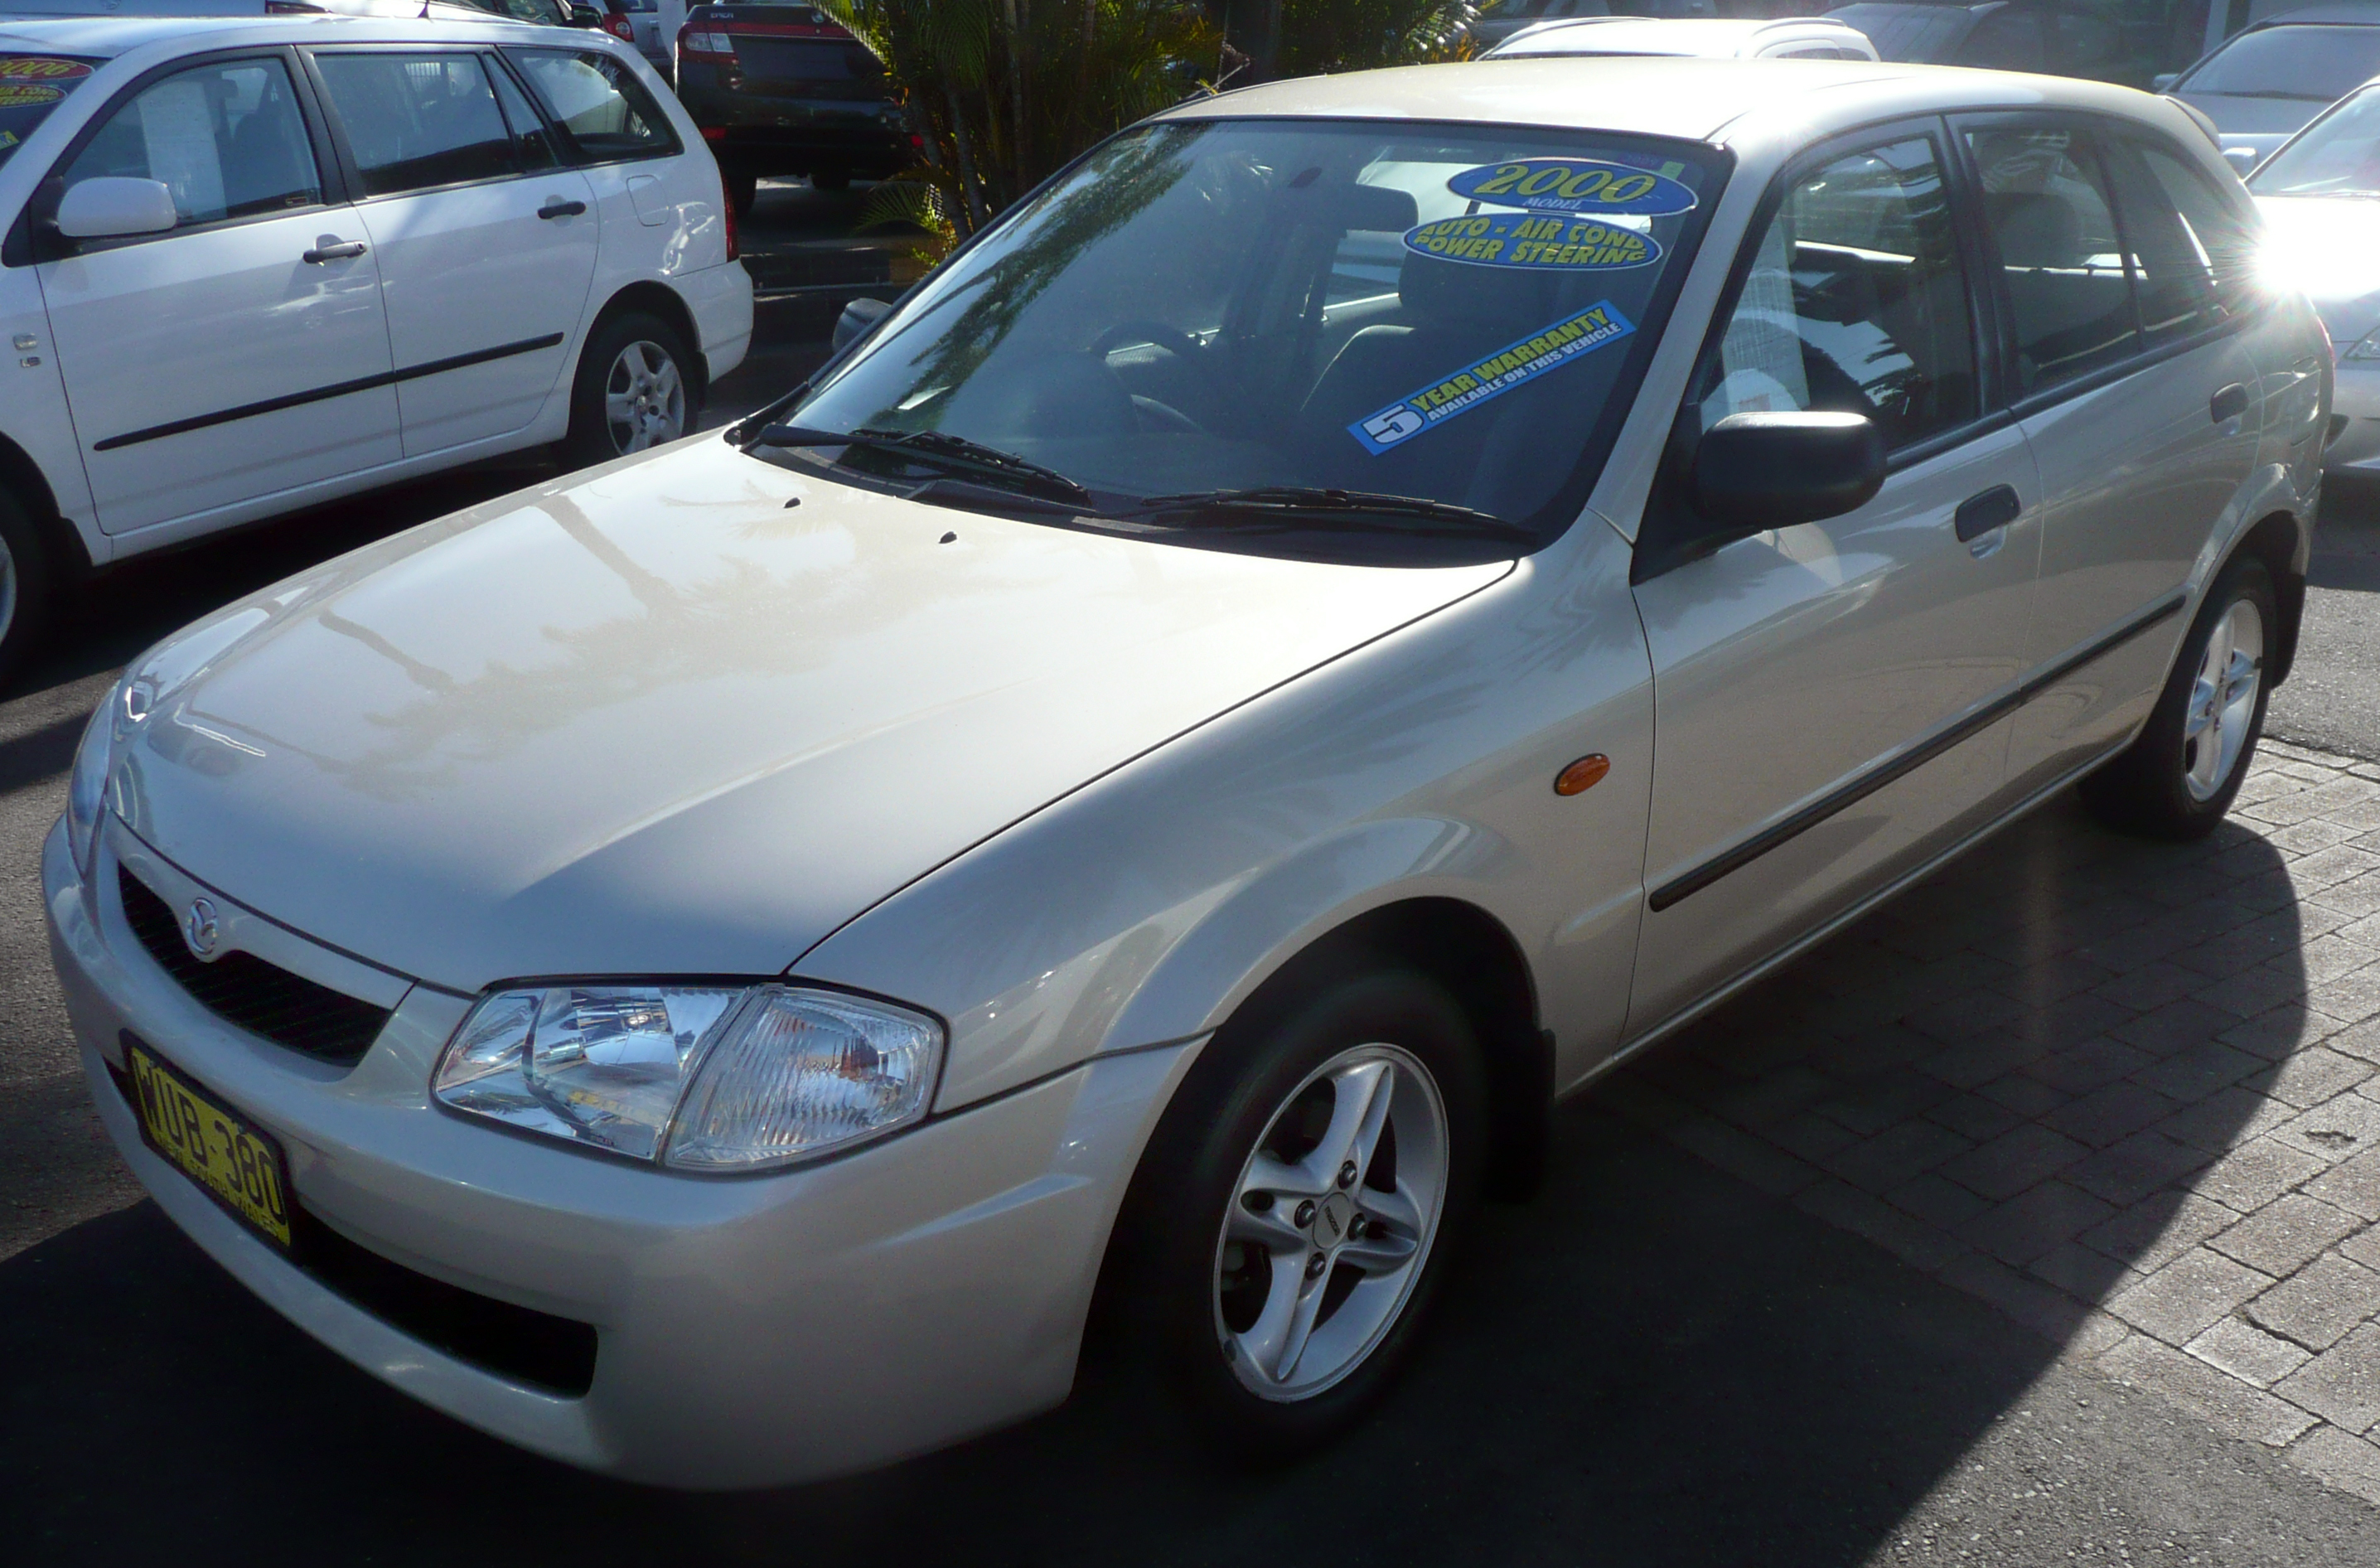 https://upload.wikimedia.org/wikipedia/commons/0/02/2000_Mazda_323_%28BJ%29_Shades_Astina_5-door_hatchback_01.jpg